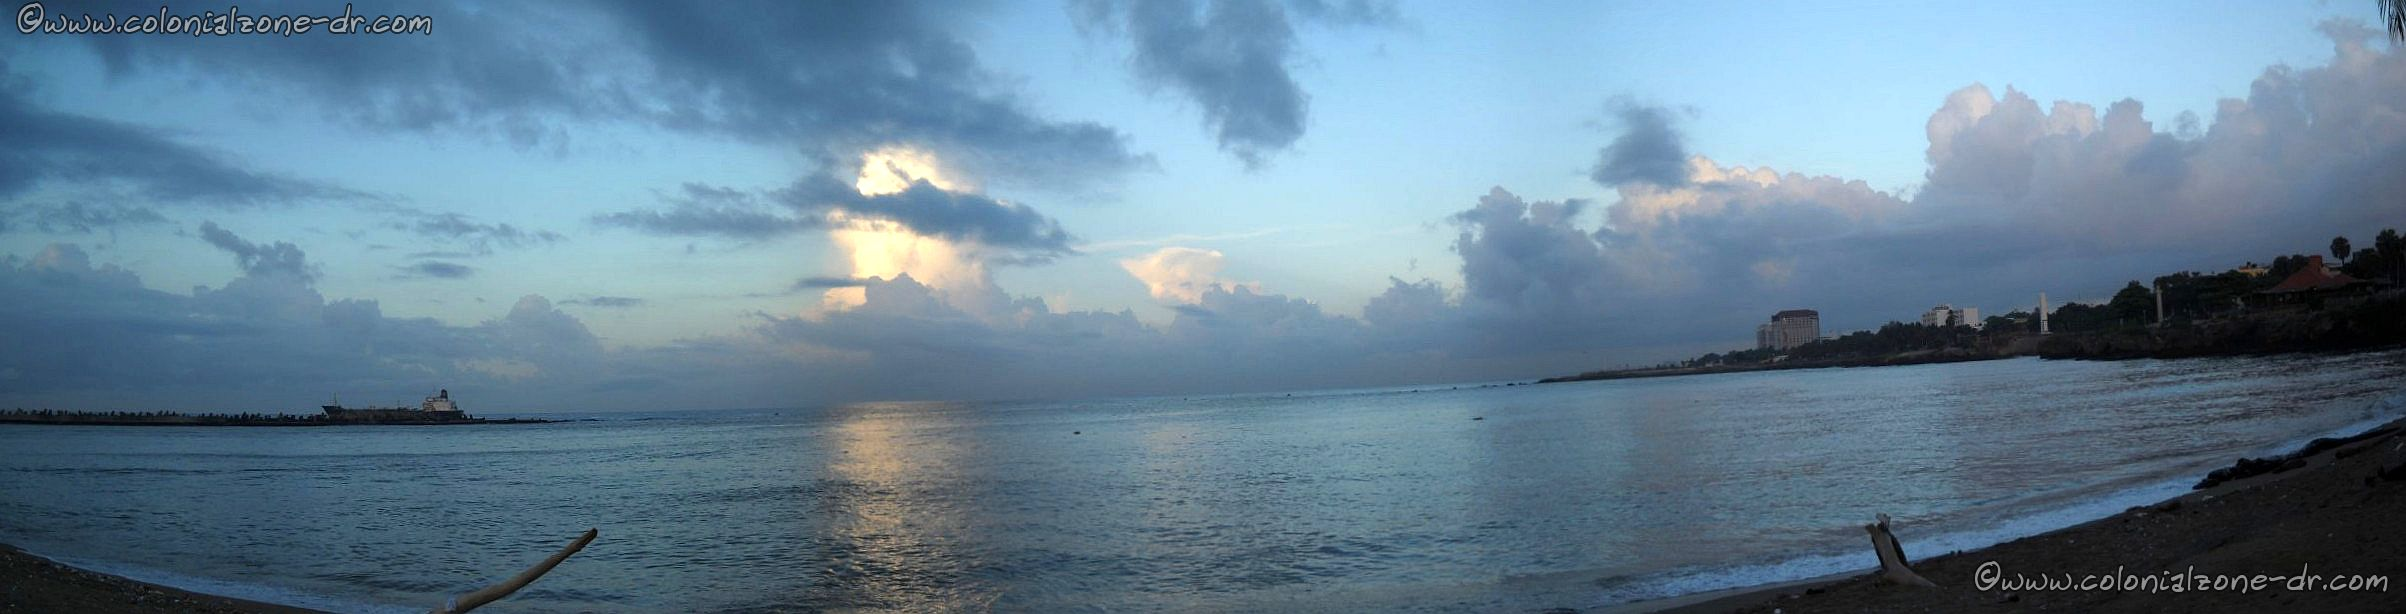 Panoramic view or the sun rising over the Caribbean Sea at the mouth of Rio Ozama in Ciudad Colonial, Santo Domingo, Dominican Republic. The reflection of the clouds on the water is breathtaking.